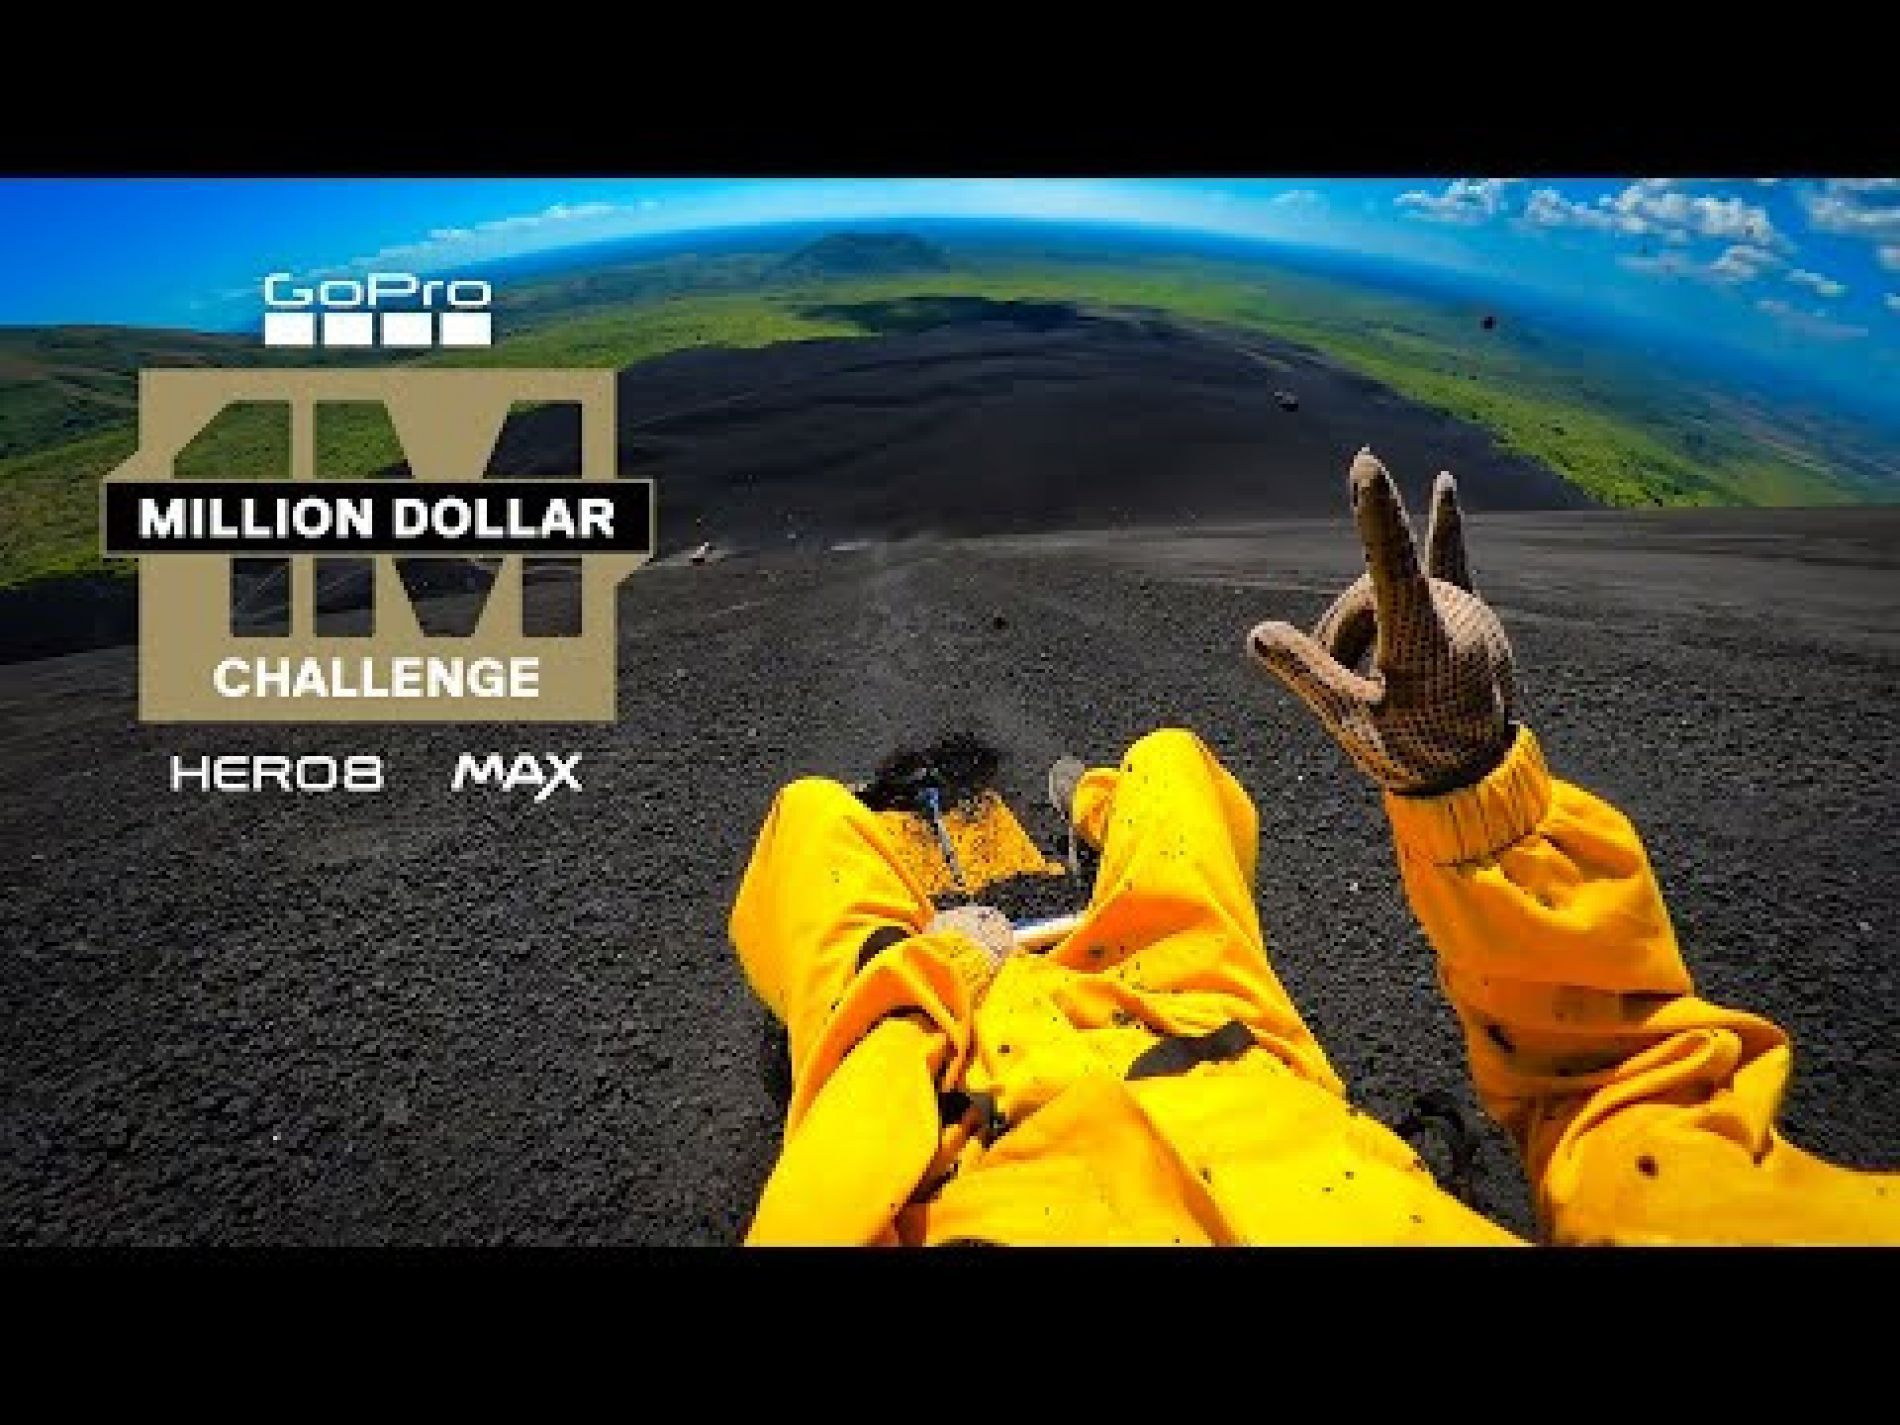 'Ava' by Garmiani in amazing GoPro 'Million $ challenge'  video!